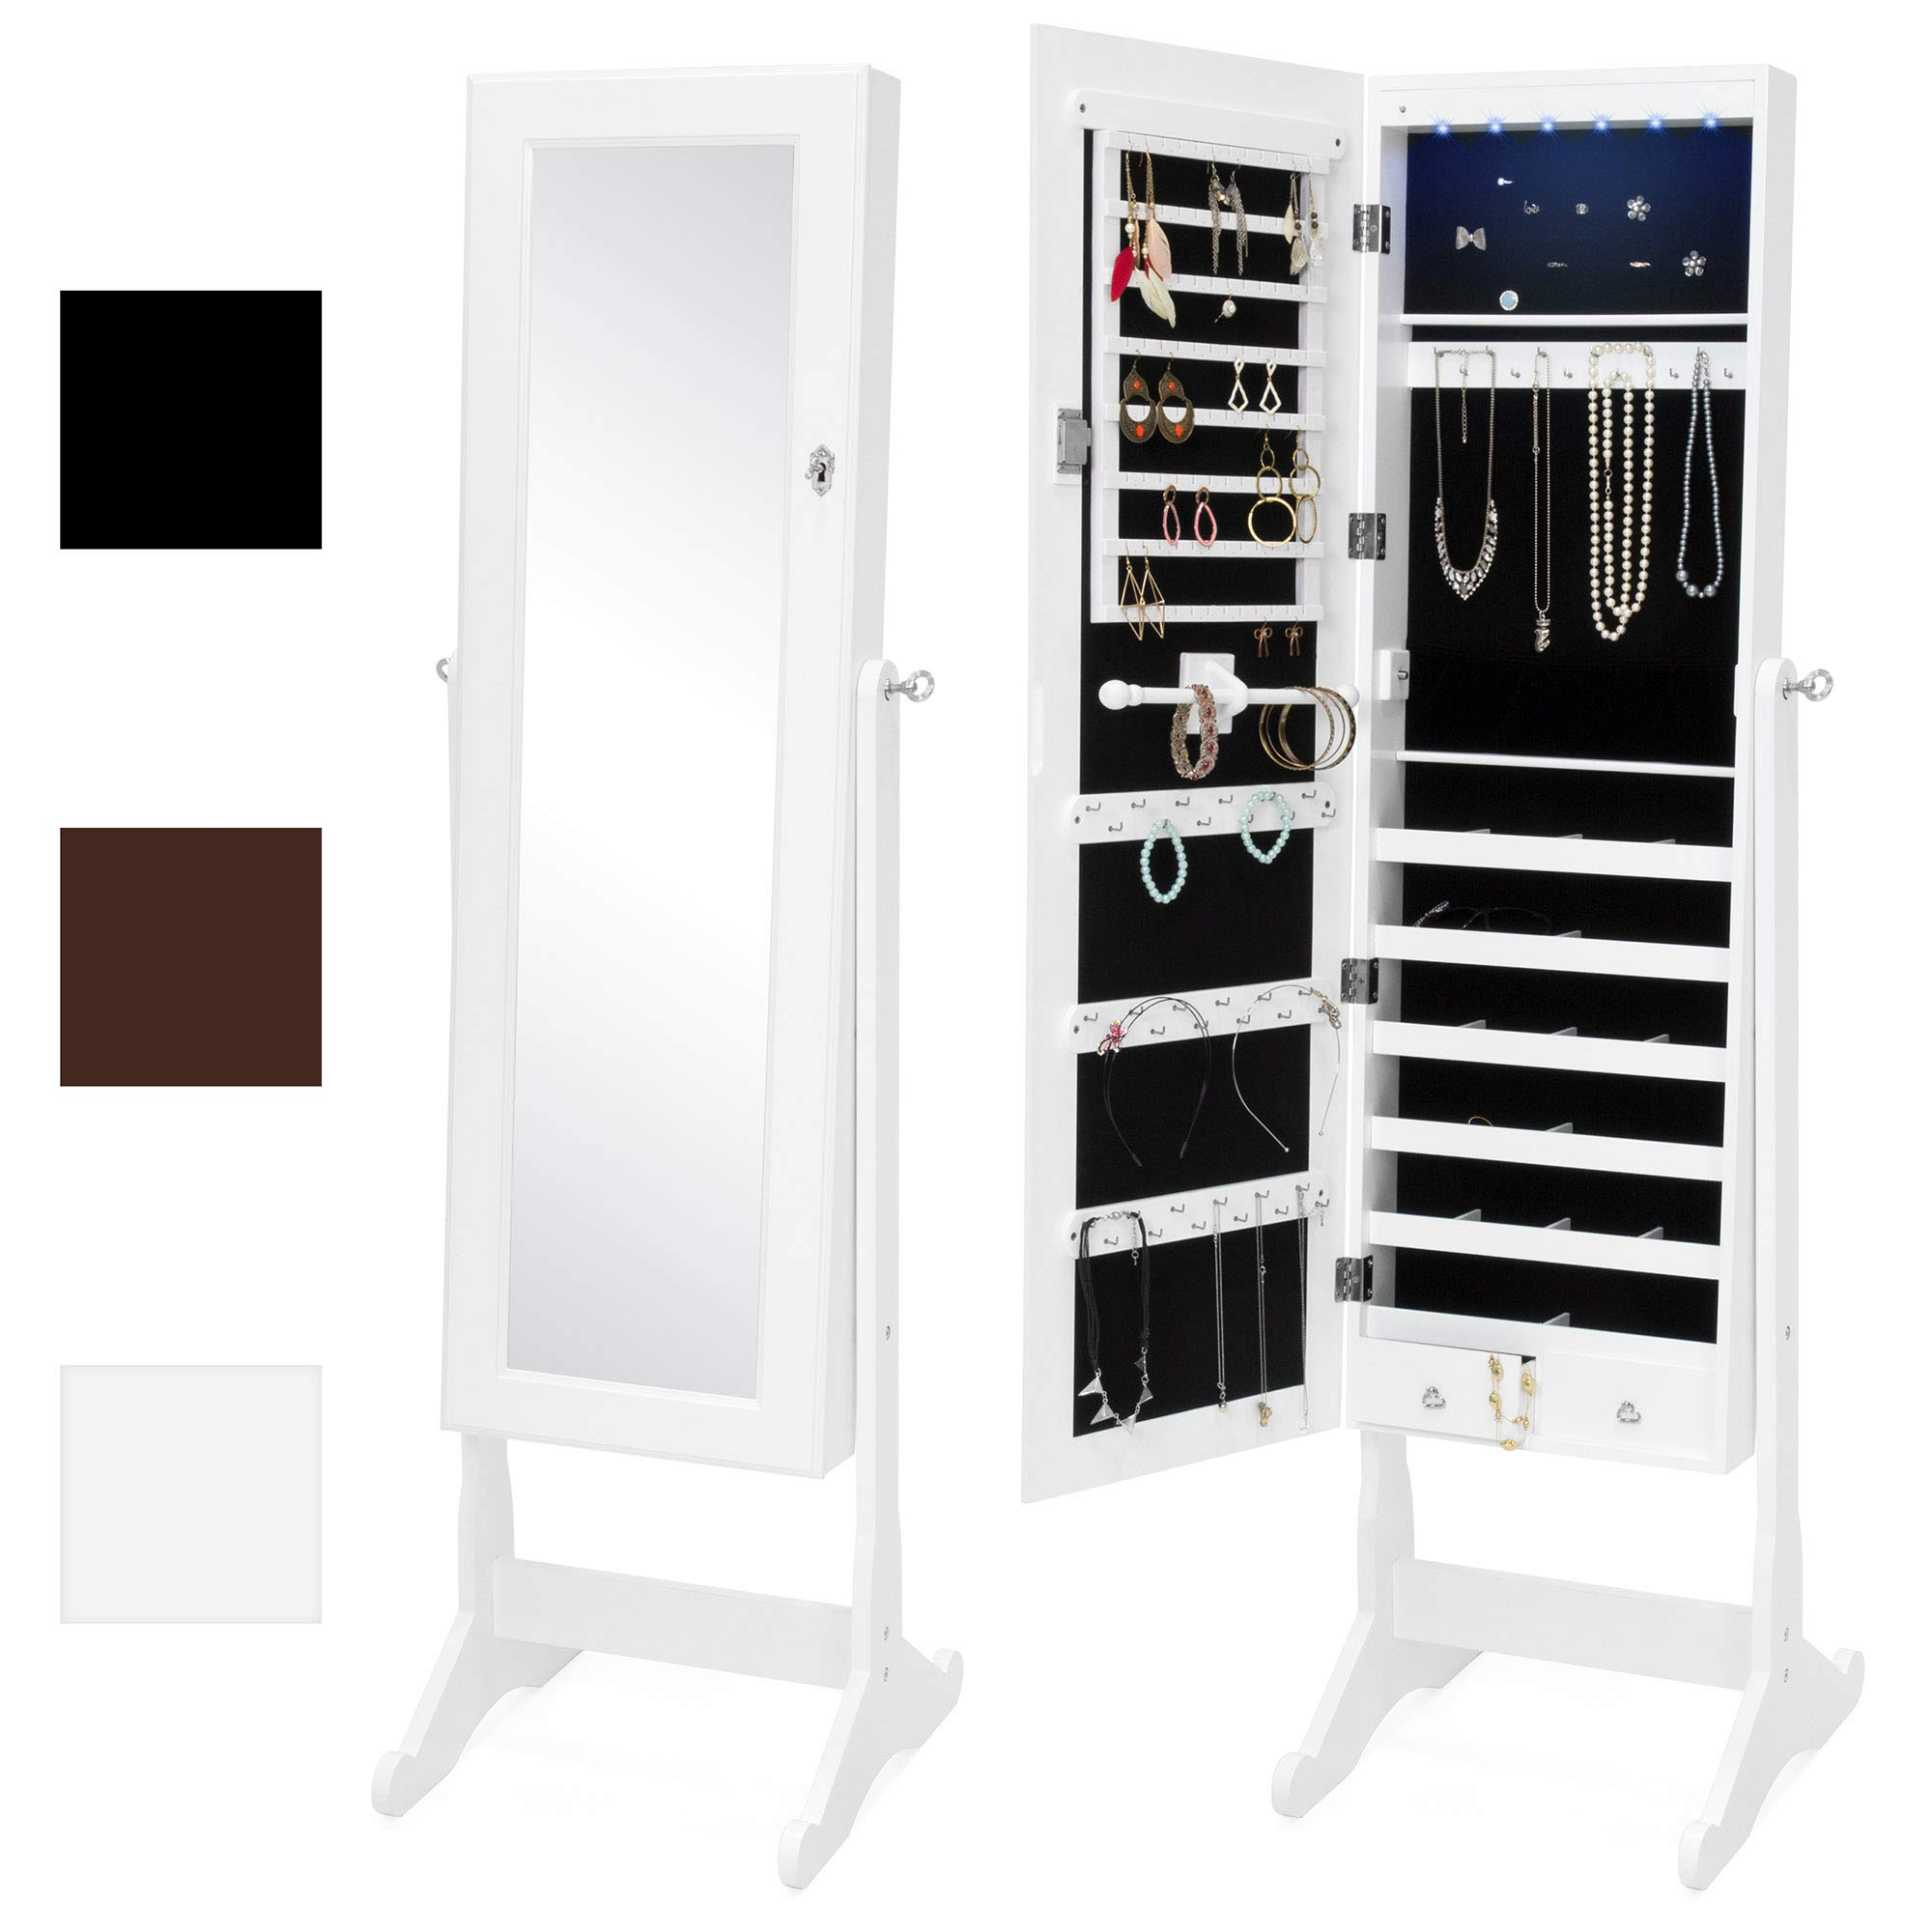 Best Choice Products 6-Tier Standing Mirror Lockable Storage Organizer Cabinet Armoire w/LED Lights - White